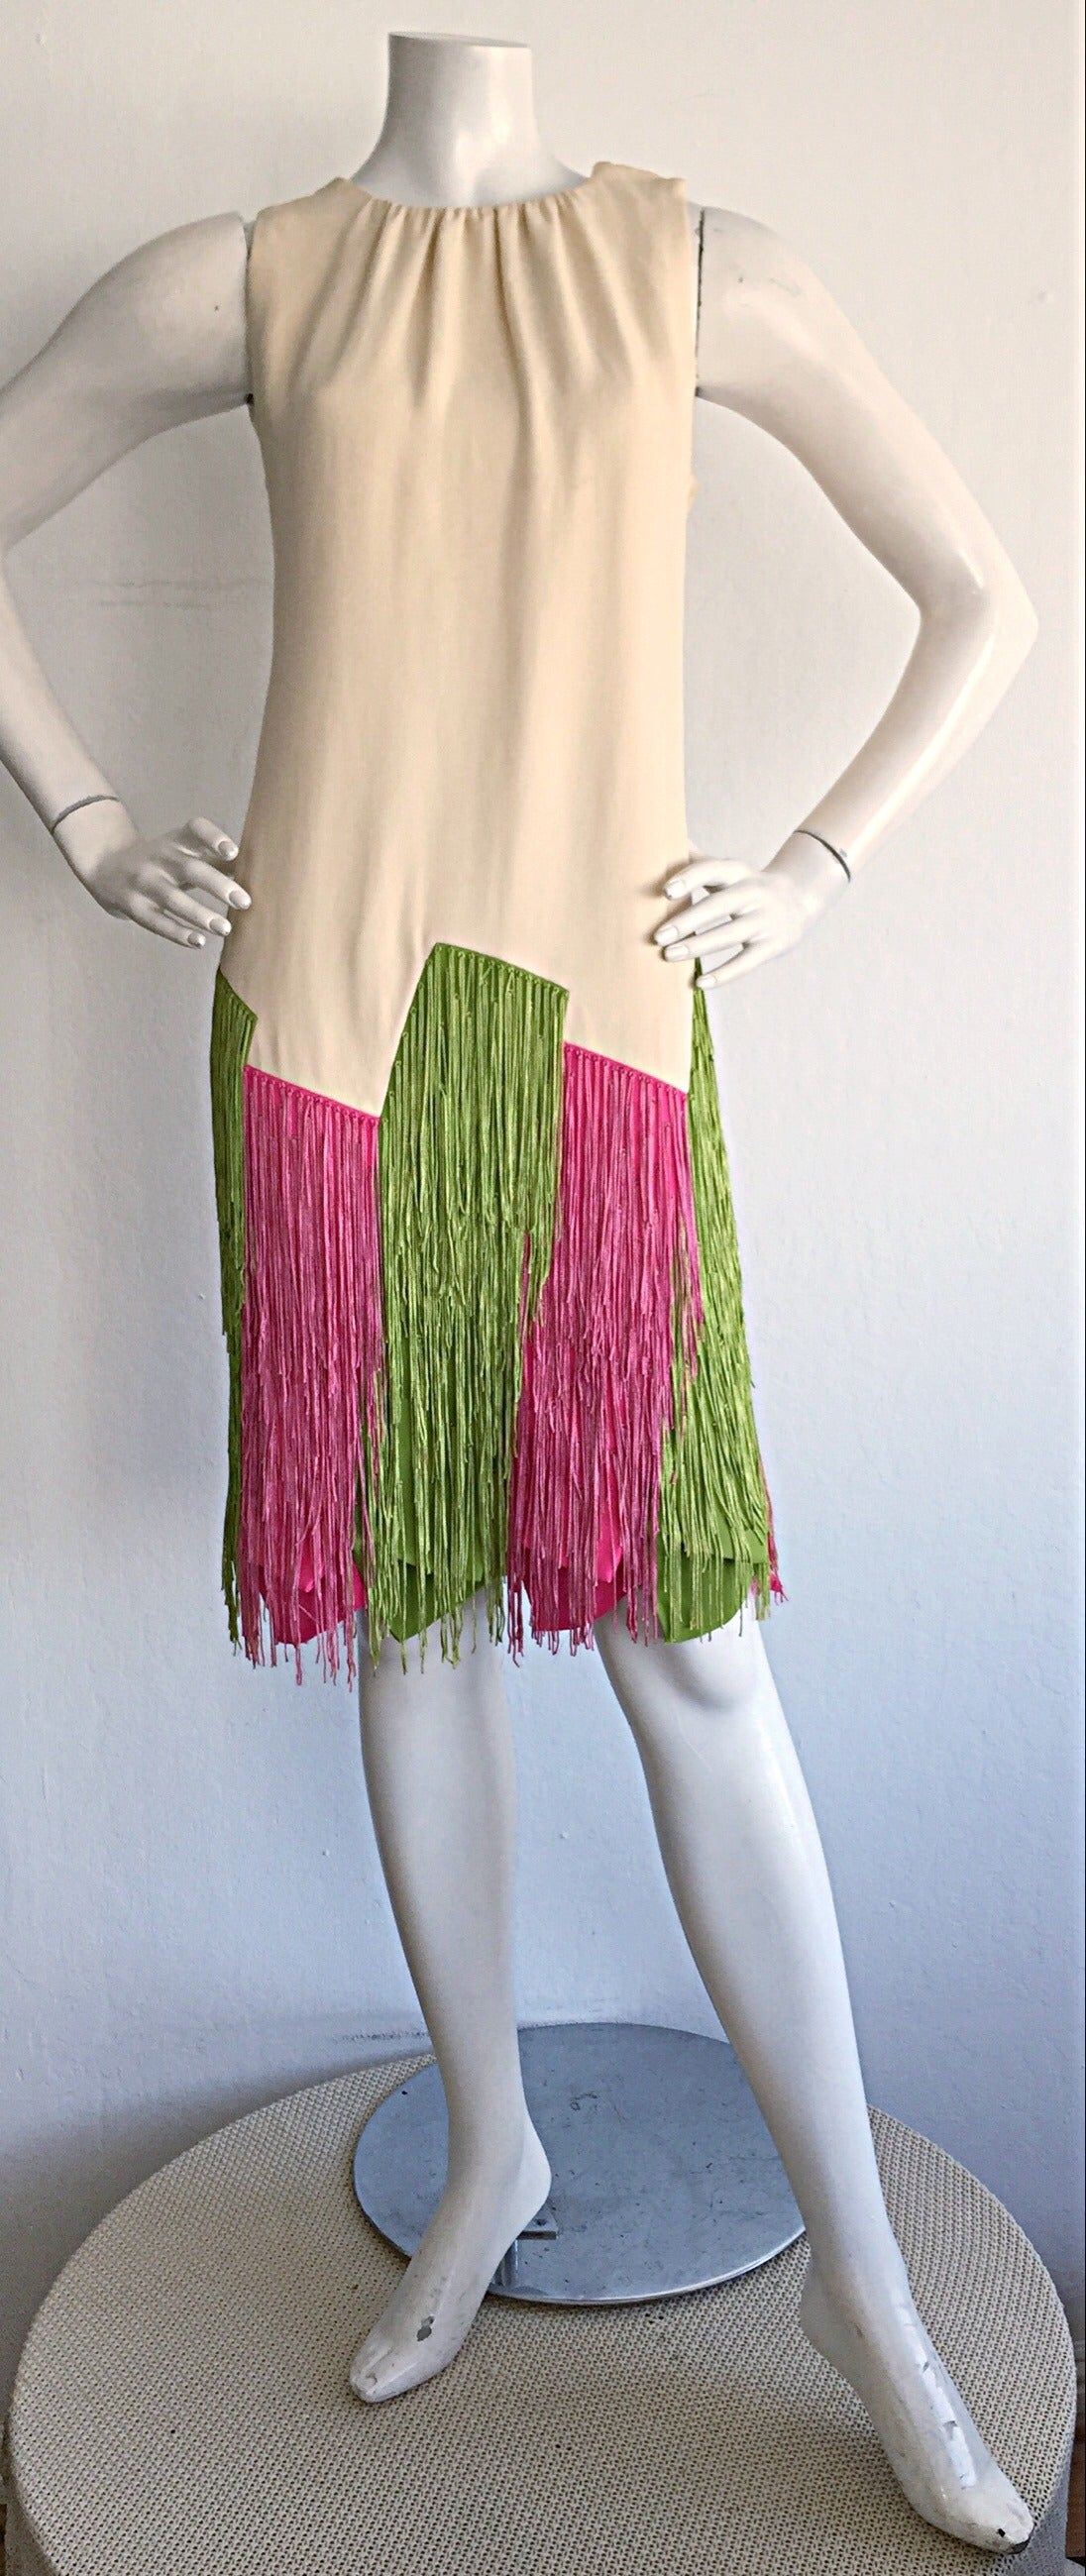 Ultra Rare Jean Louis 1960s 60s Fringe Car Wash Dress For Sale 1